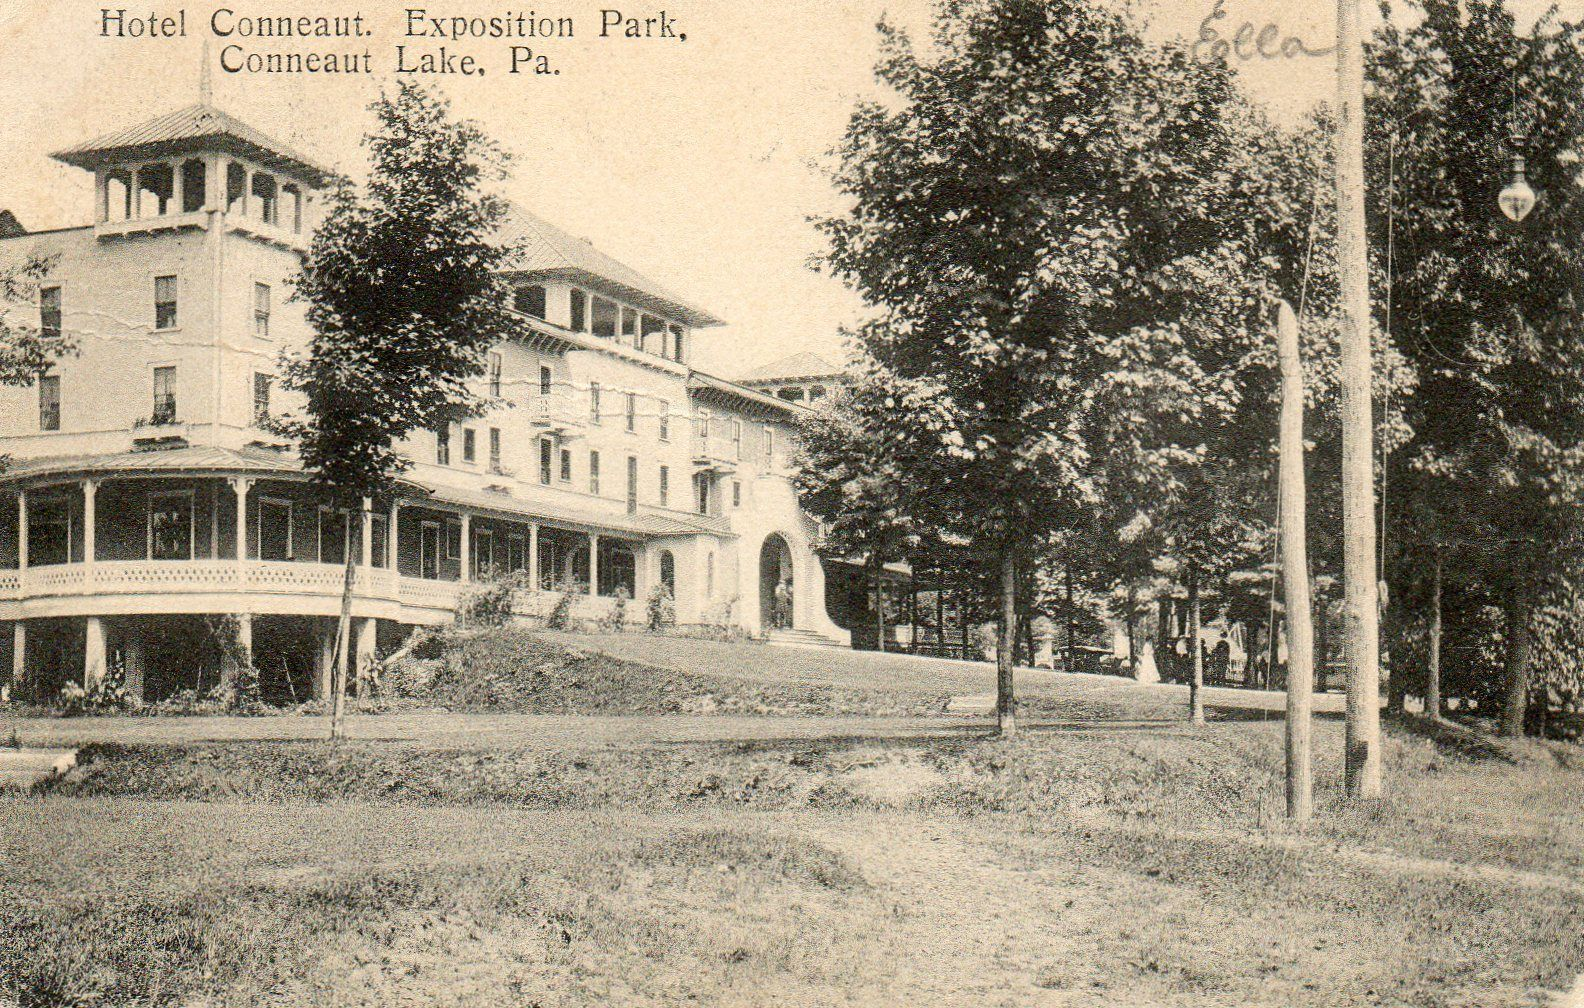 Hotel Conneaut Exposition Park In Lake Pa 1909